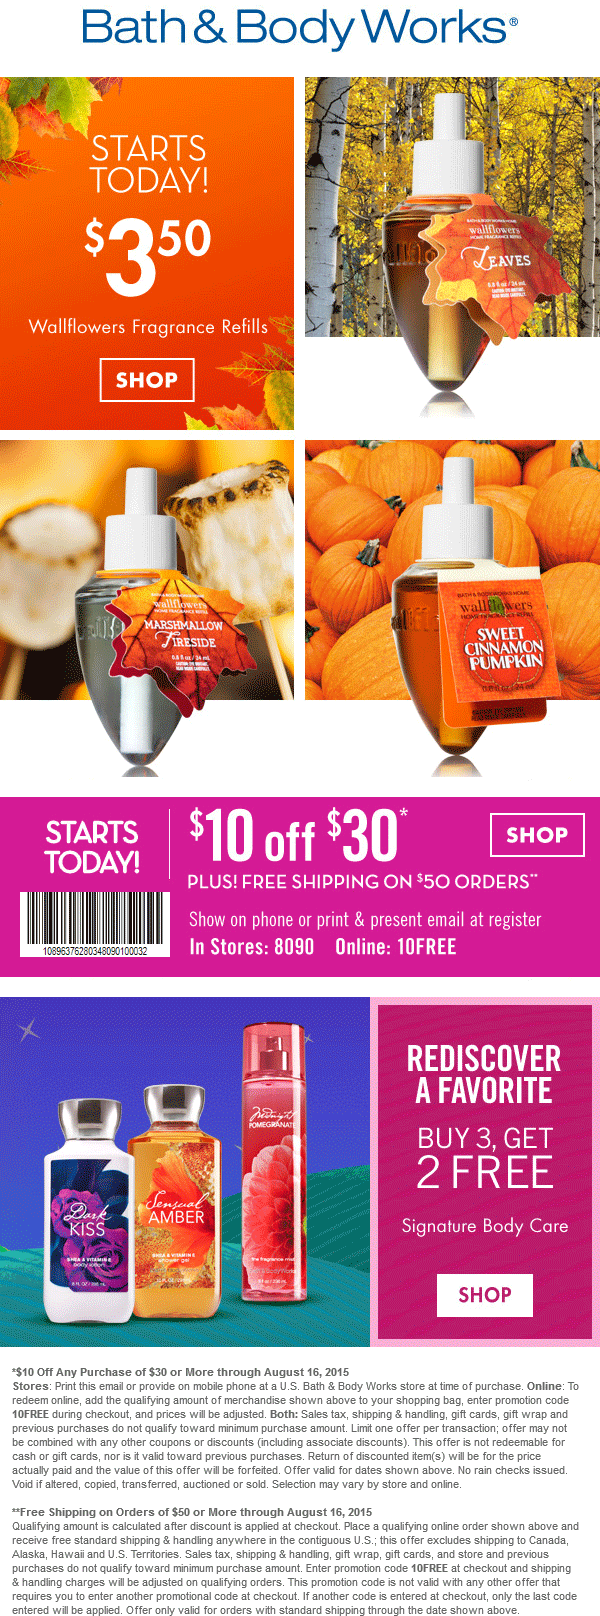 Bath & Body Works Coupon October 2016 $10 off $30 at Bath & Body Works, or online via promo code 10FREE